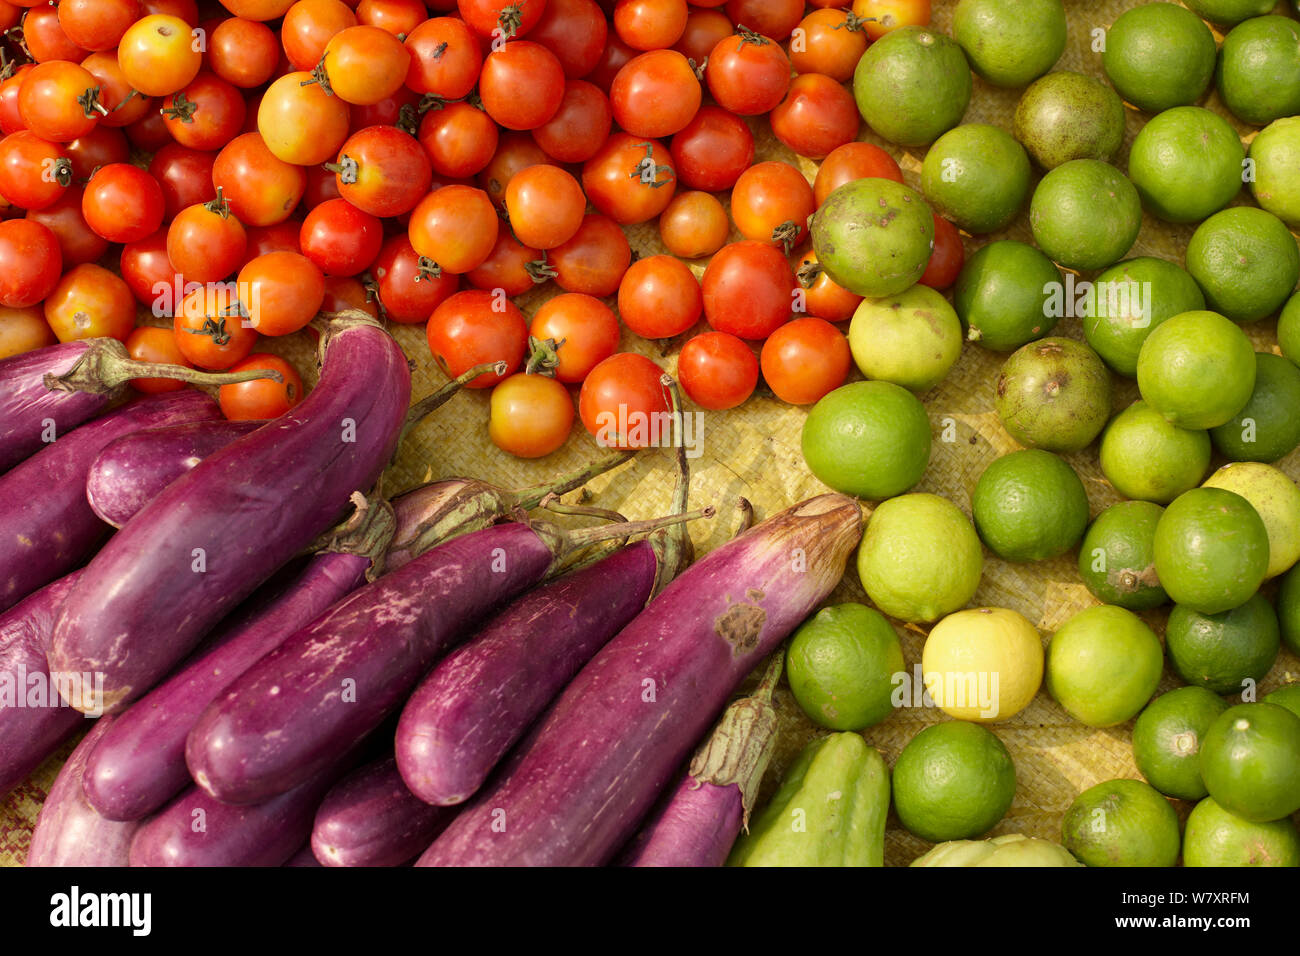 Fruits and vegetables for sale in market in Luang Prabang, Laos, March 2009. Stock Photo